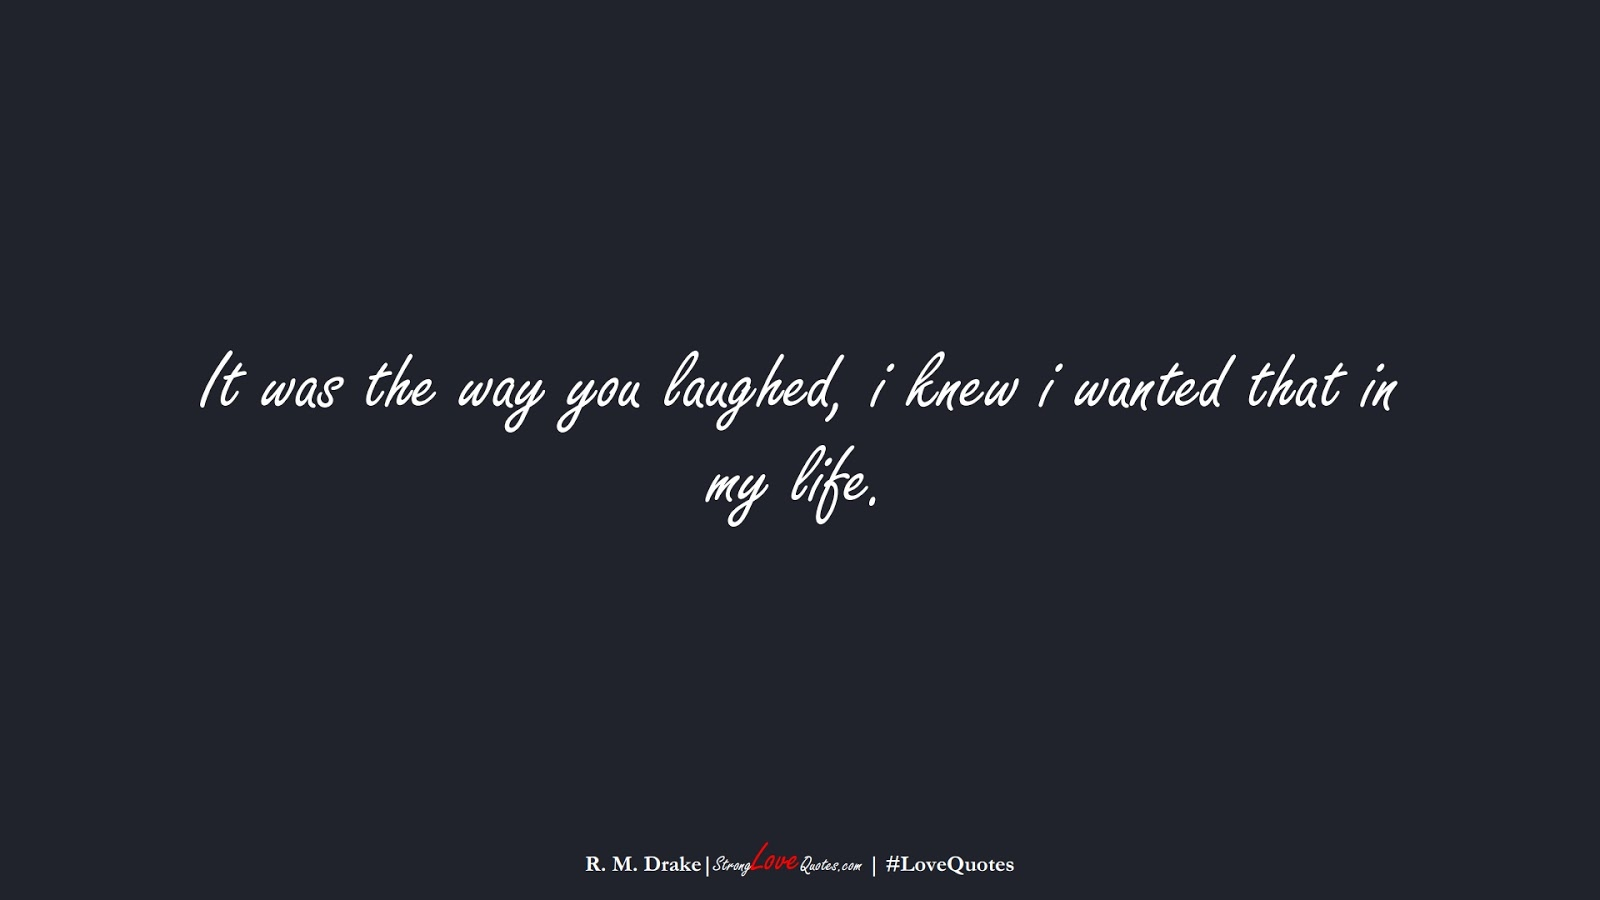 It was the way you laughed, i knew i wanted that in my life. (R. M. Drake);  #LoveQuotes